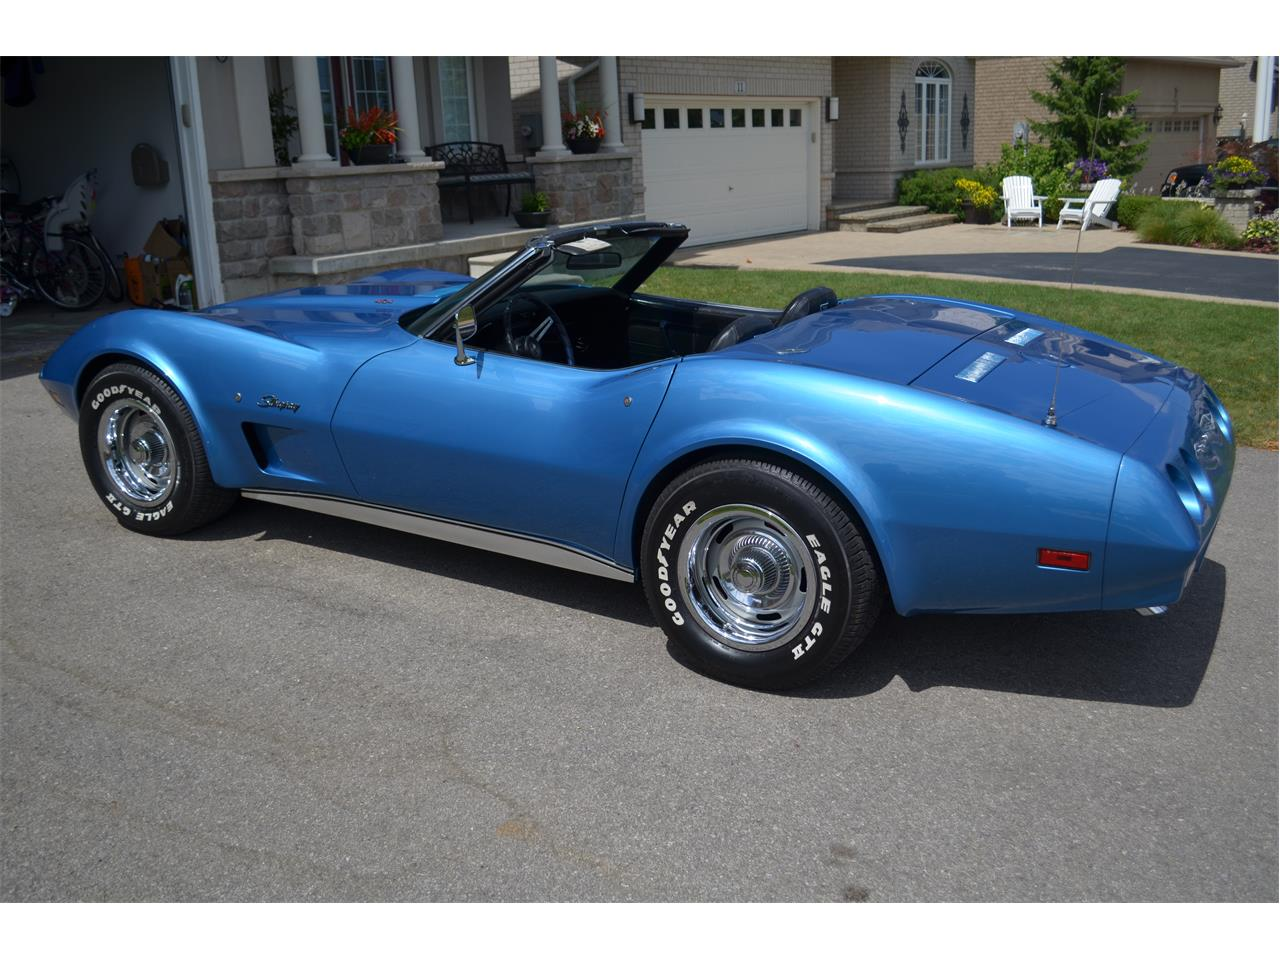 Large Picture of 1974 Chevrolet Corvette - $21,500.00 Offered by a Private Seller - F75E